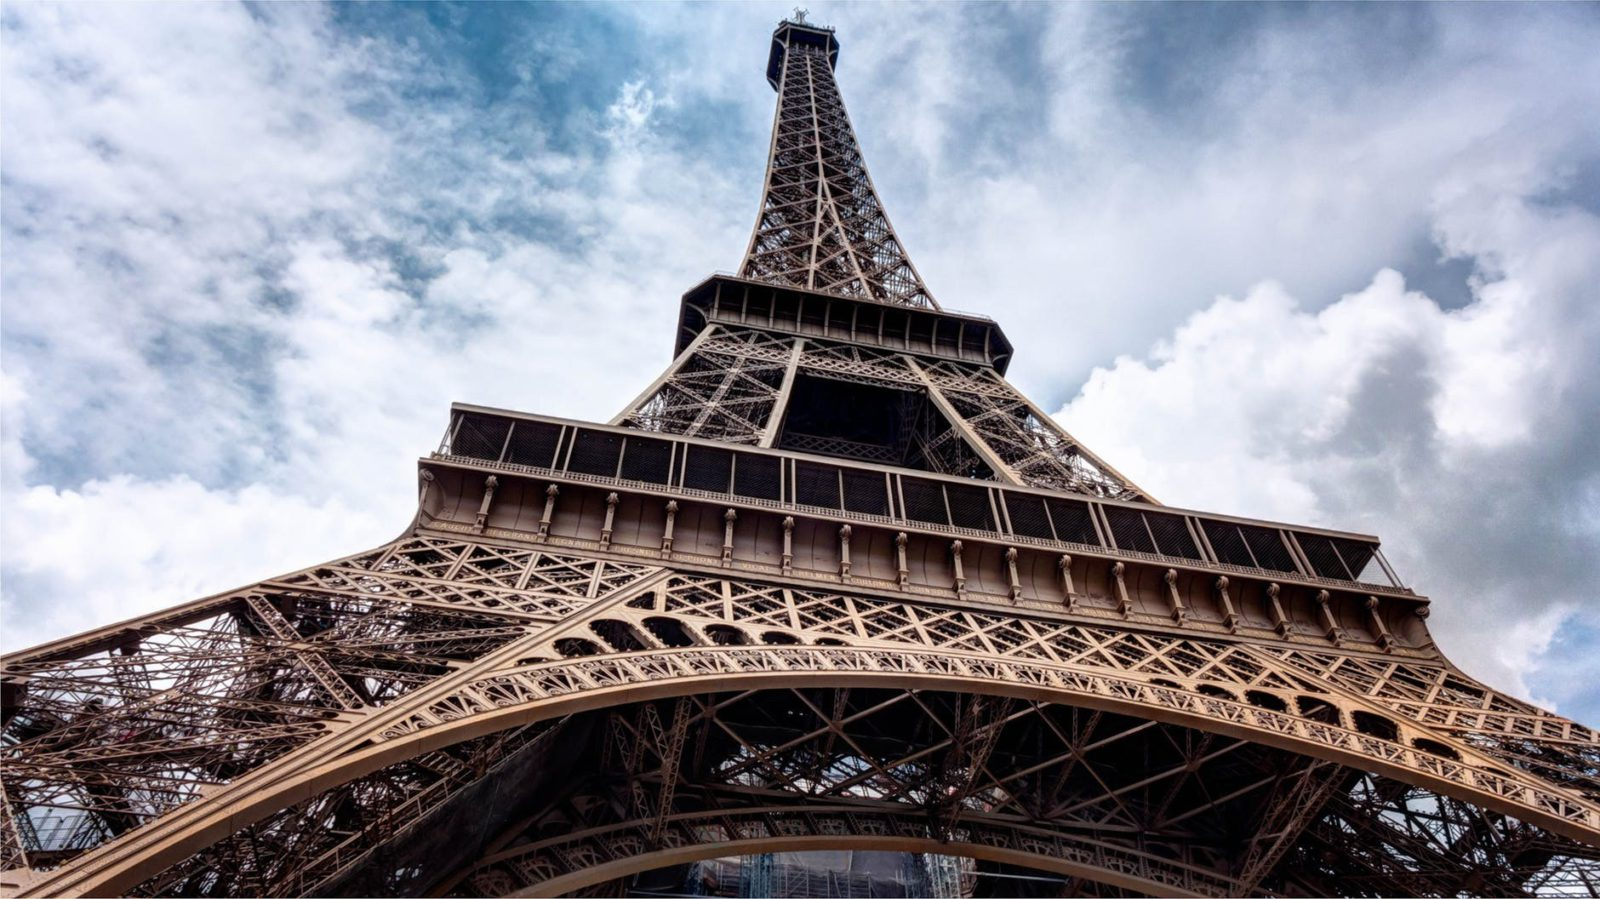 Flight Deal Round Trip From New York Area to Paris #newyork #paris